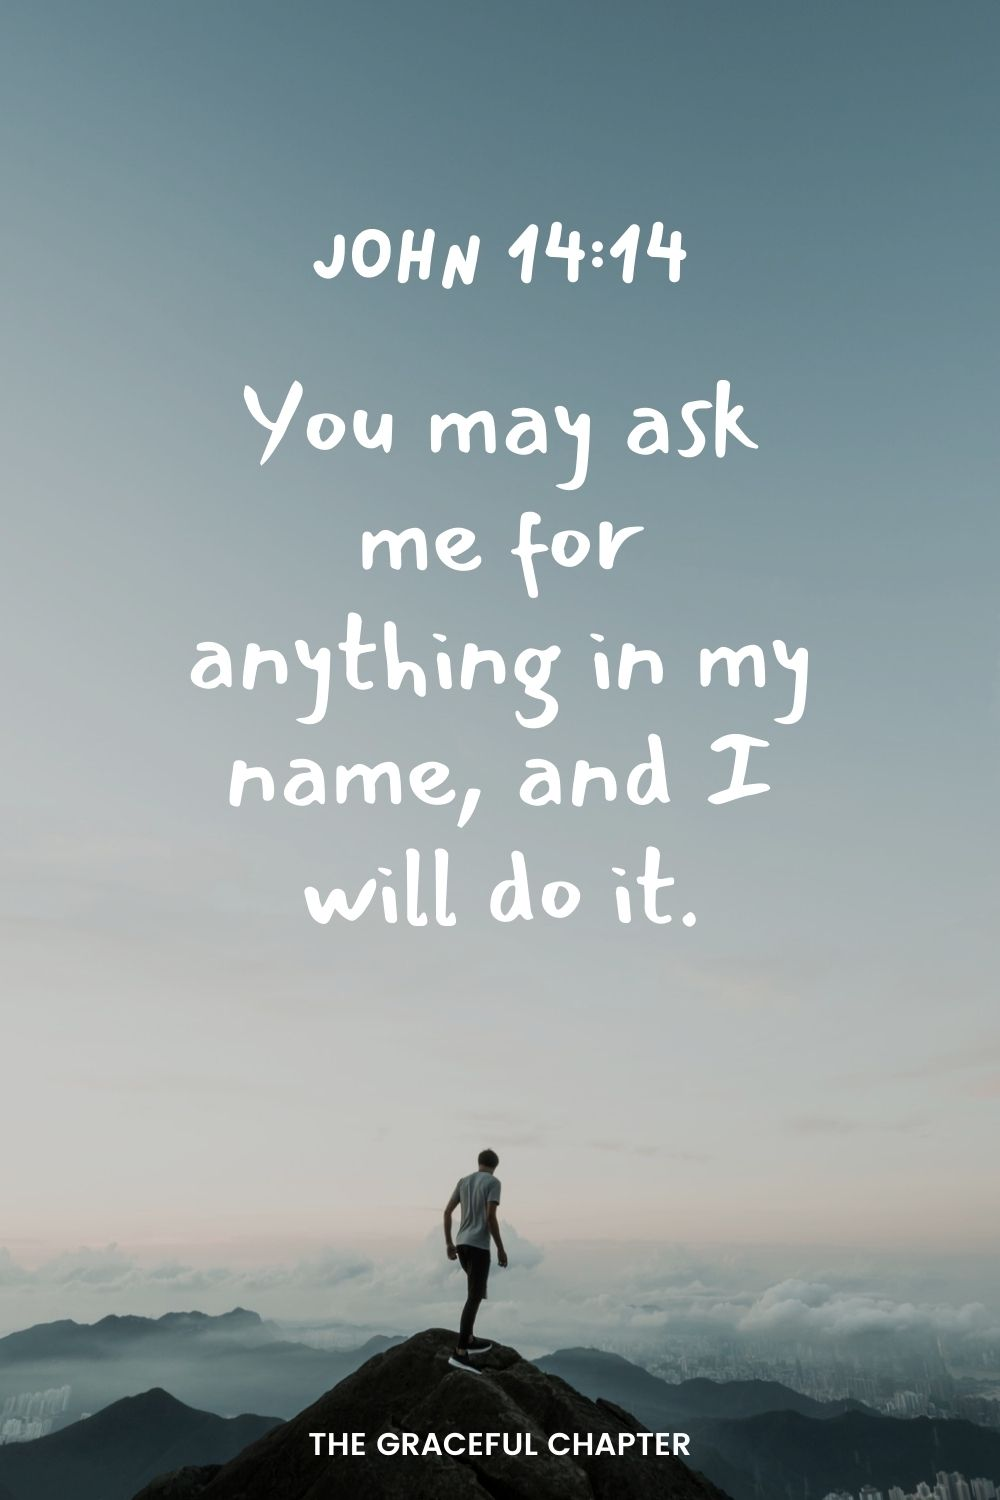 You may ask me for anything in my name, and I will do it. John 14:14